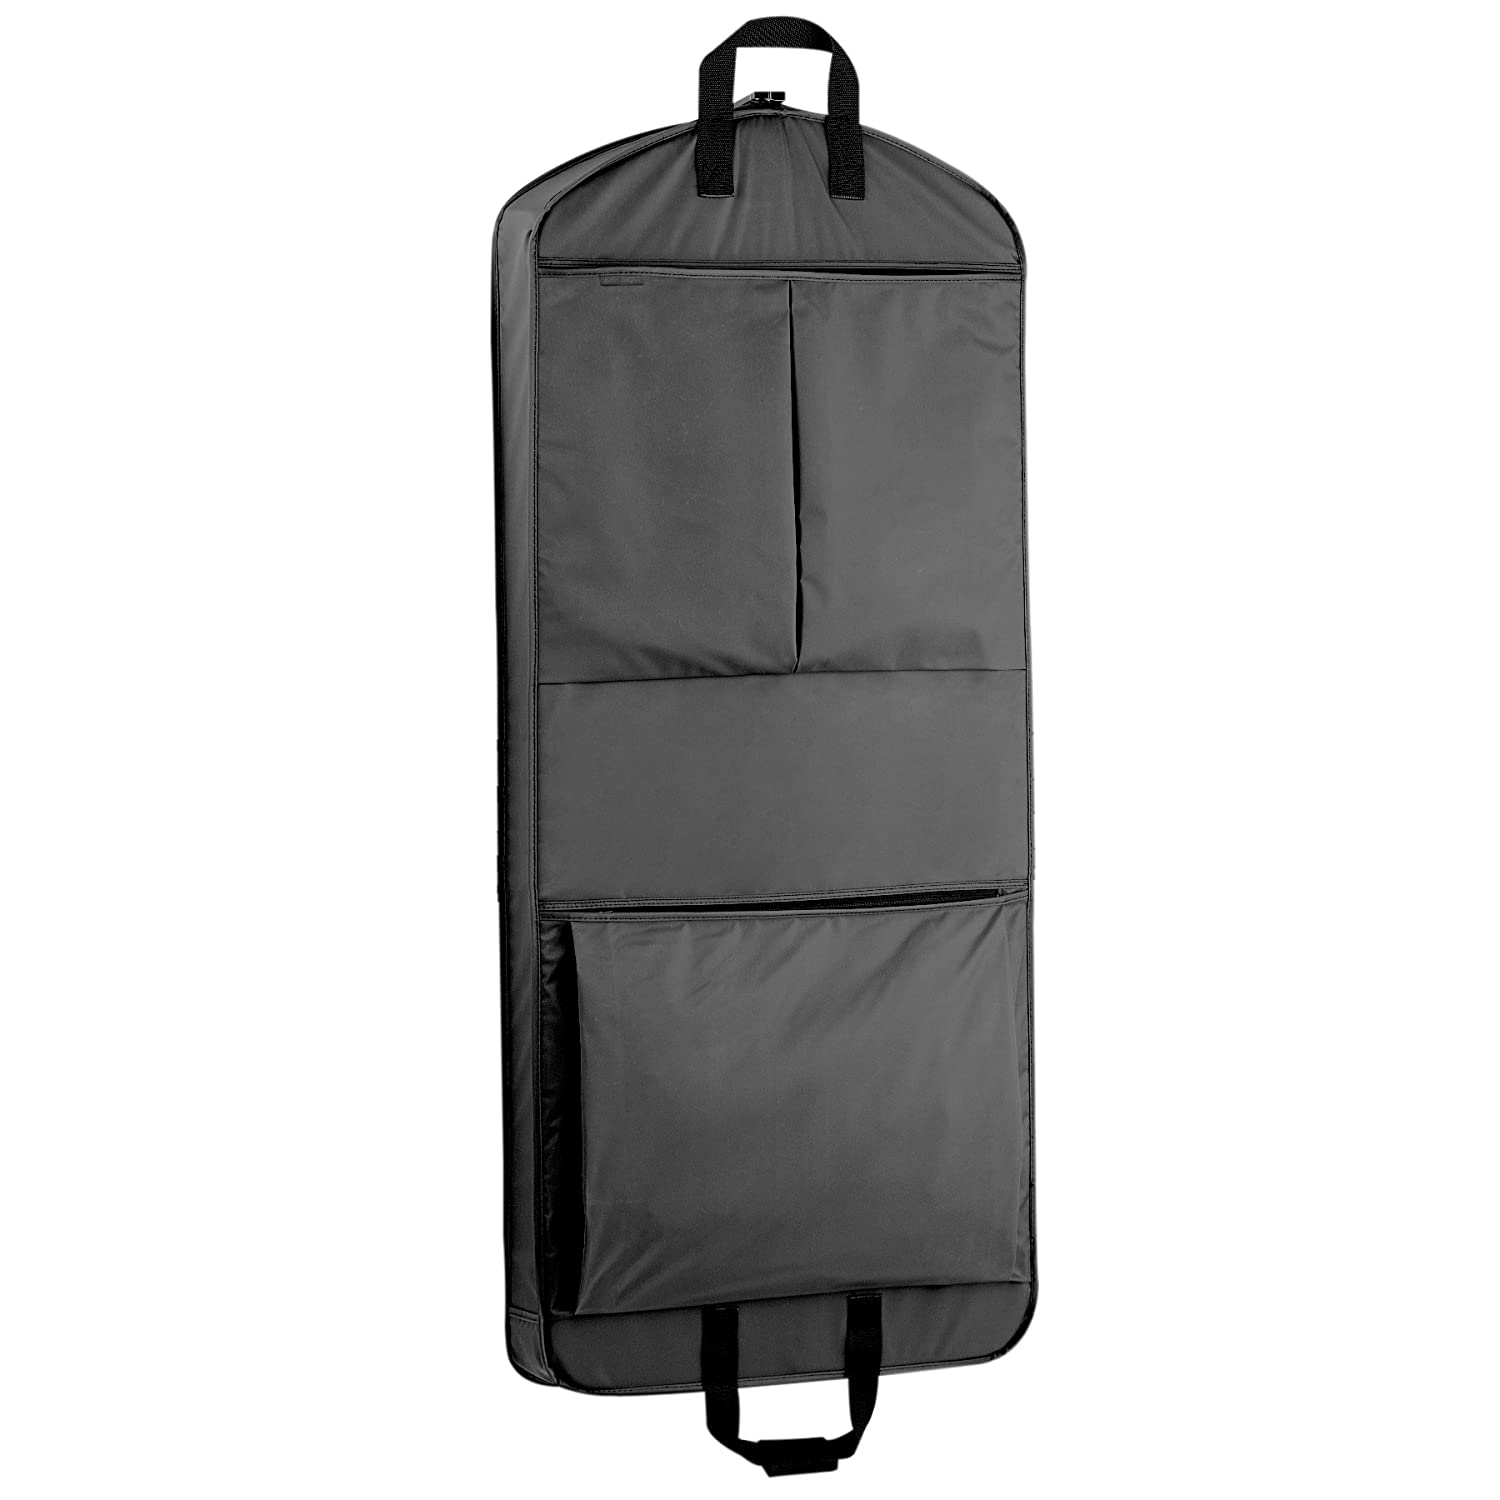 WallyBags 52 Inch Extra Capacity Garment Bag with Pockets, Navy, One Size 859